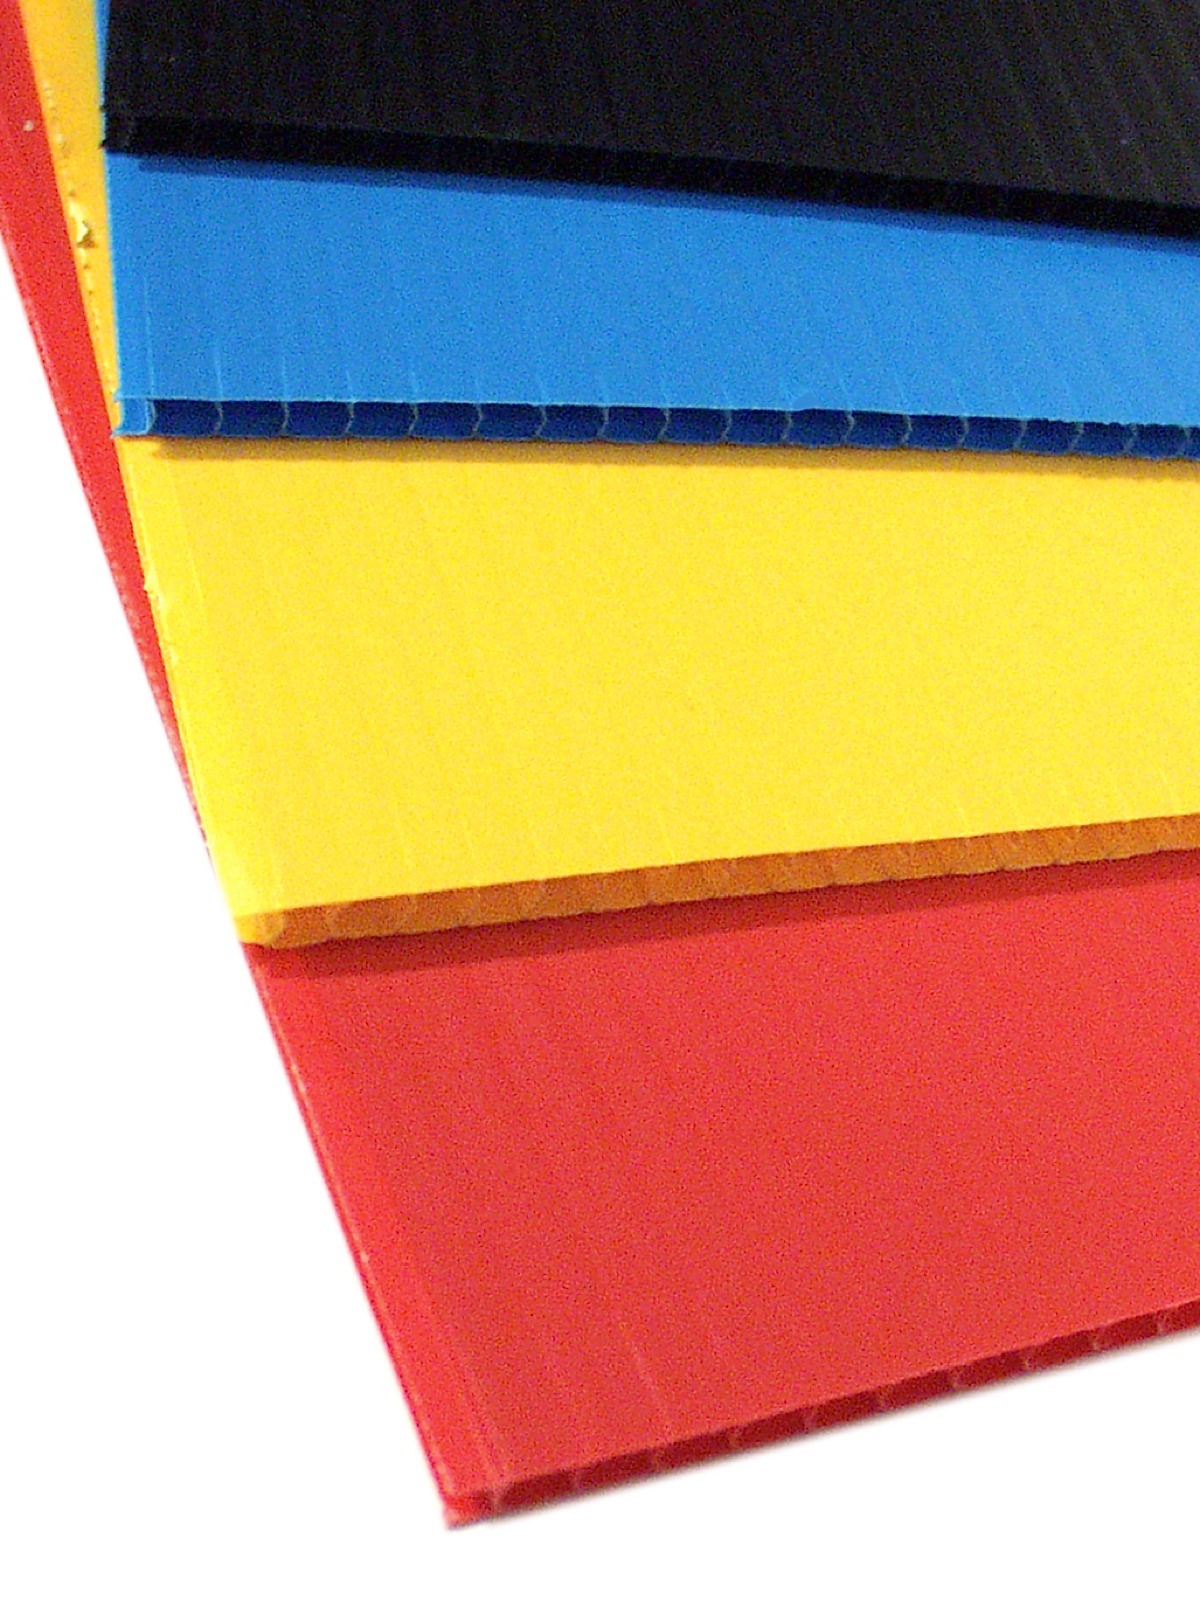 Cope Plastics Plasticor Corrugated Boards